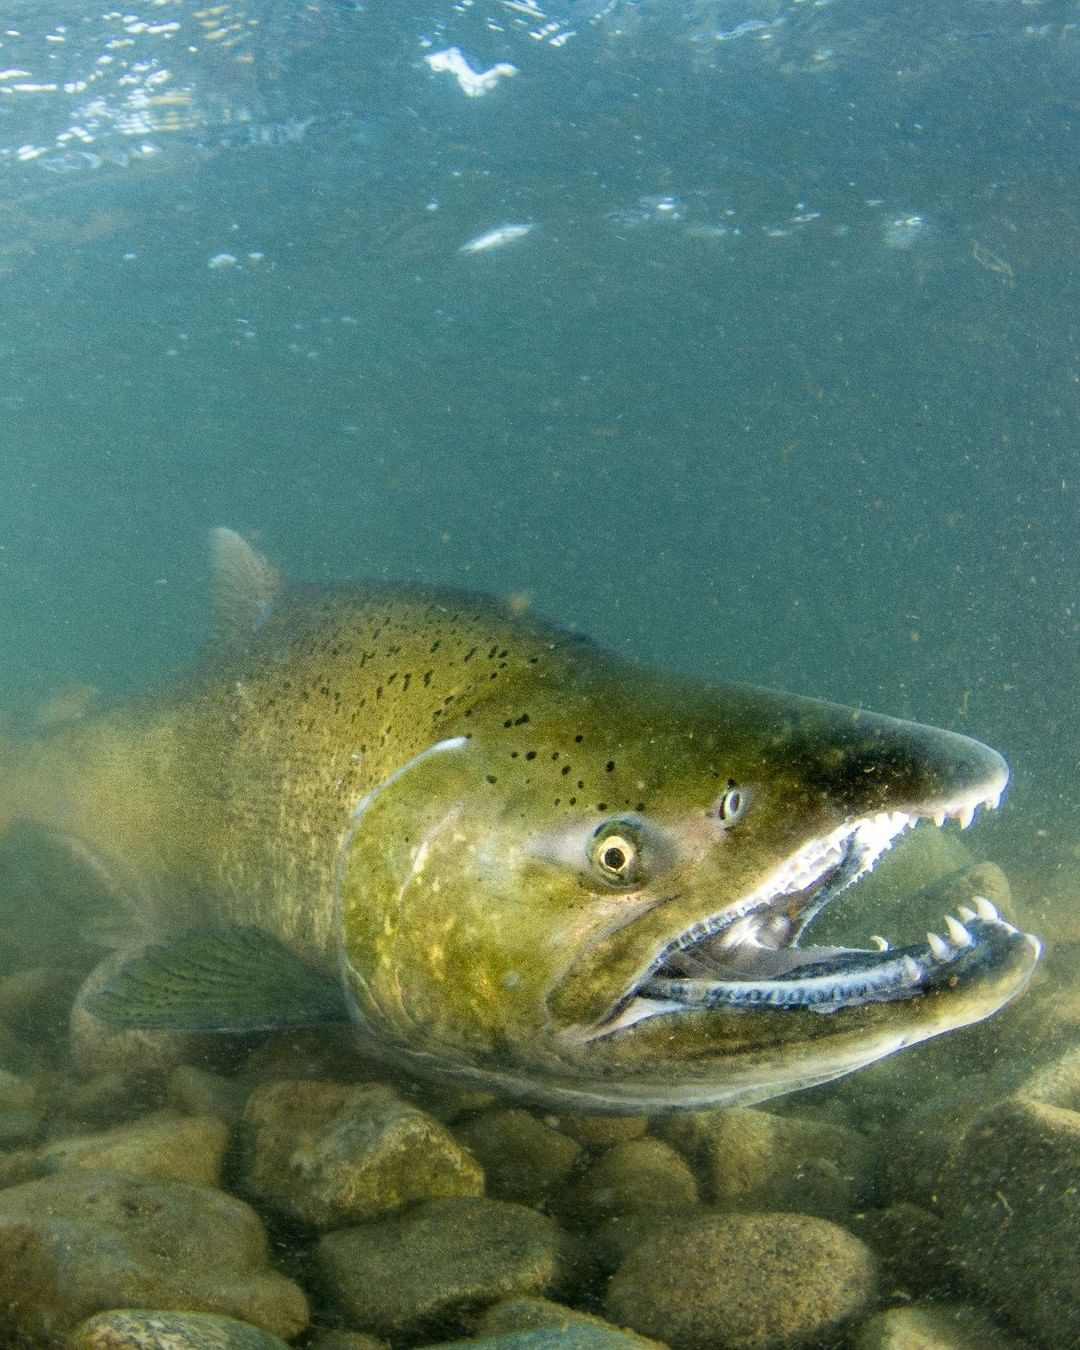 An underwater photo of a large green salmon. It's face is close to the camera with its body receding into the murky distance.